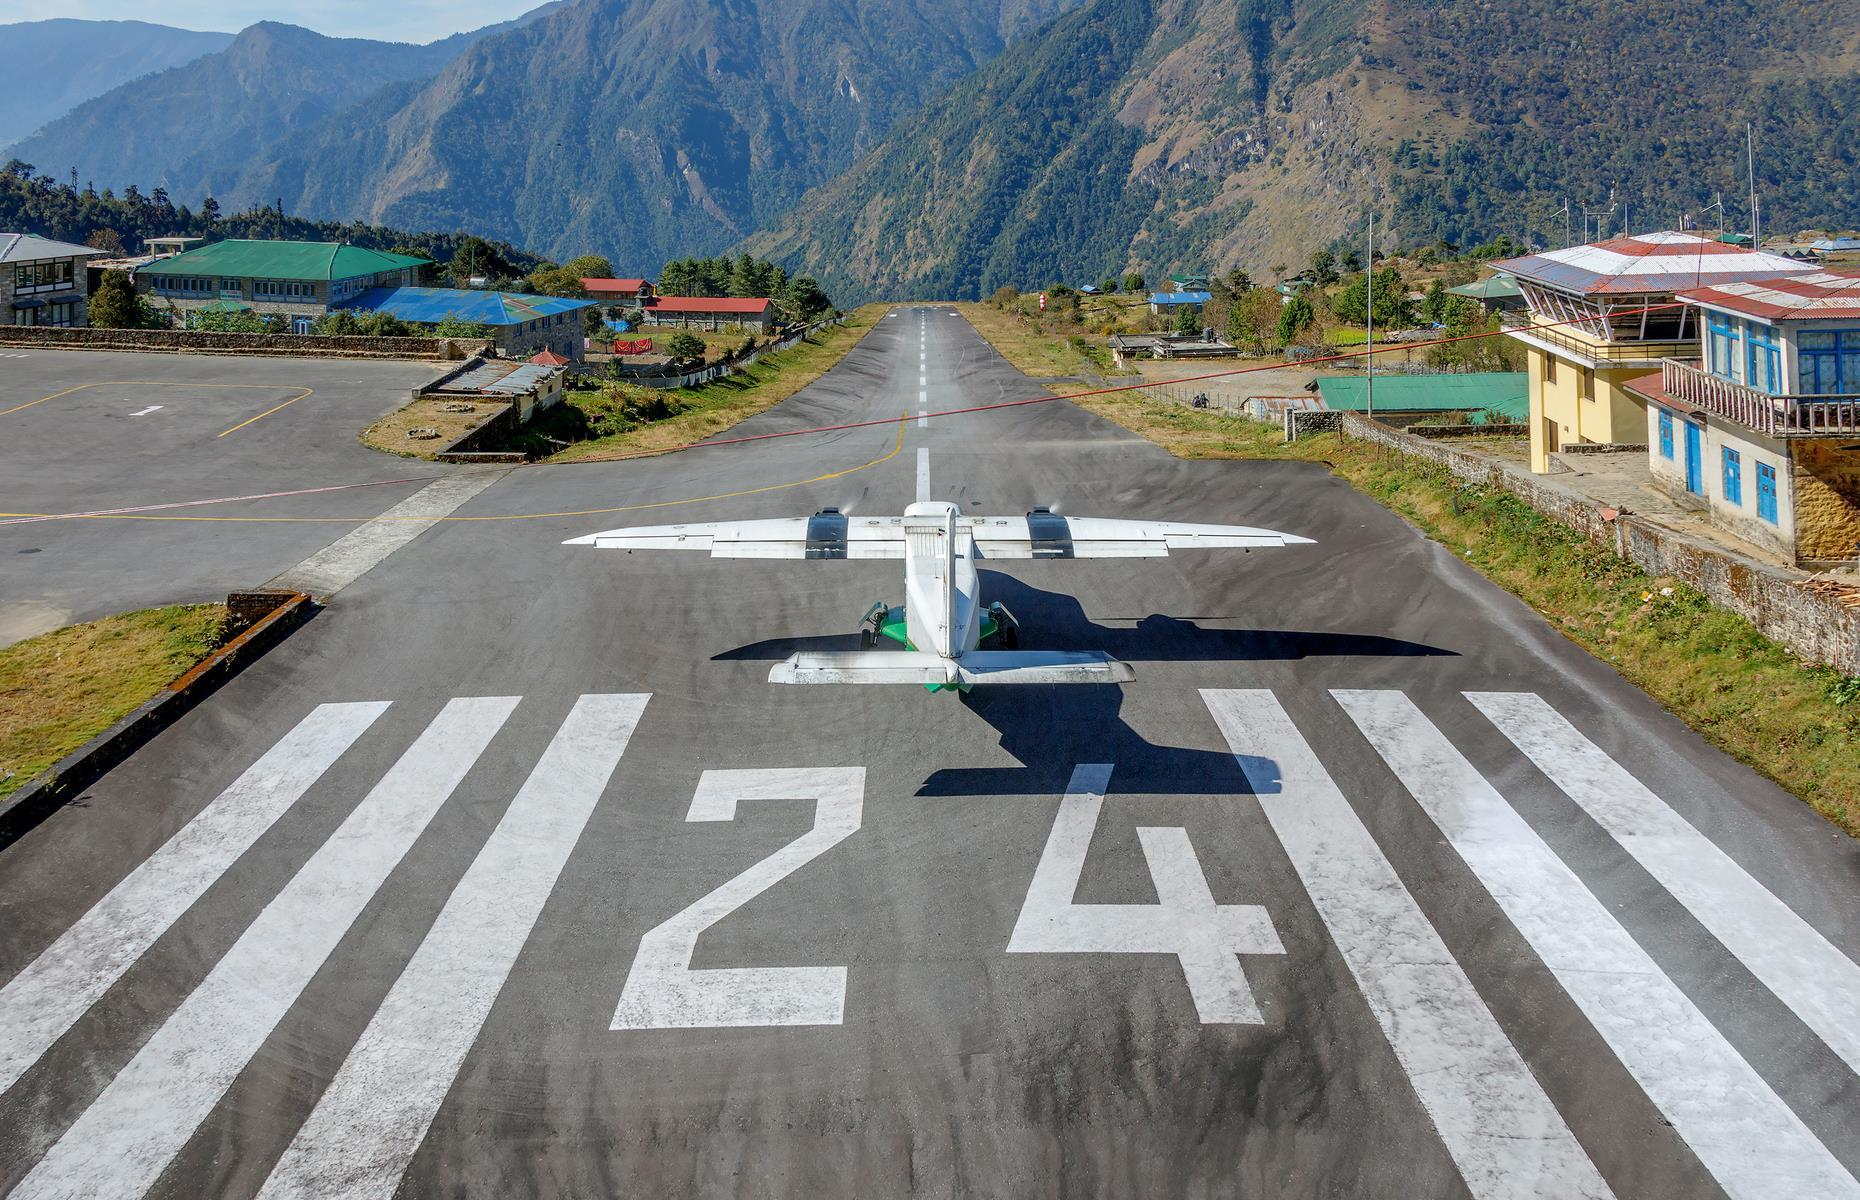 Slide 1 of 44: When it comes to airports, it's fair to say that bigger isn't always better. From icy runways made of compacted snow to perilous clifftop landings, we bring you some of the smallest and most exciting landing strips in the world.